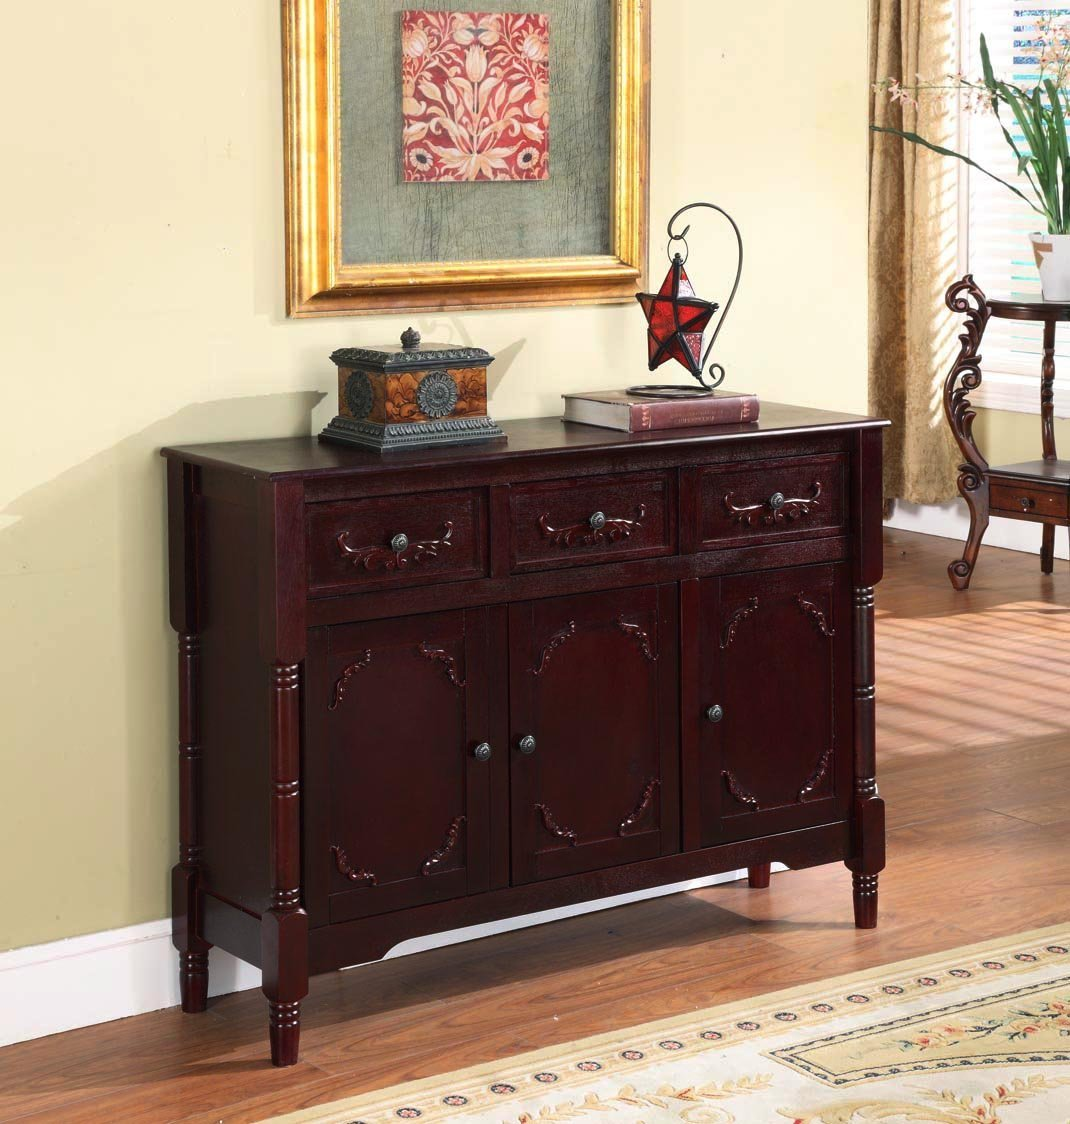 Amazon.com - Kingu0027s Brand R1021 Wood Console Sideboard Table with Drawers and Storage Cherry Finish - Buffets u0026 Sideboards : wood sideboard cabinet - Cheerinfomania.Com